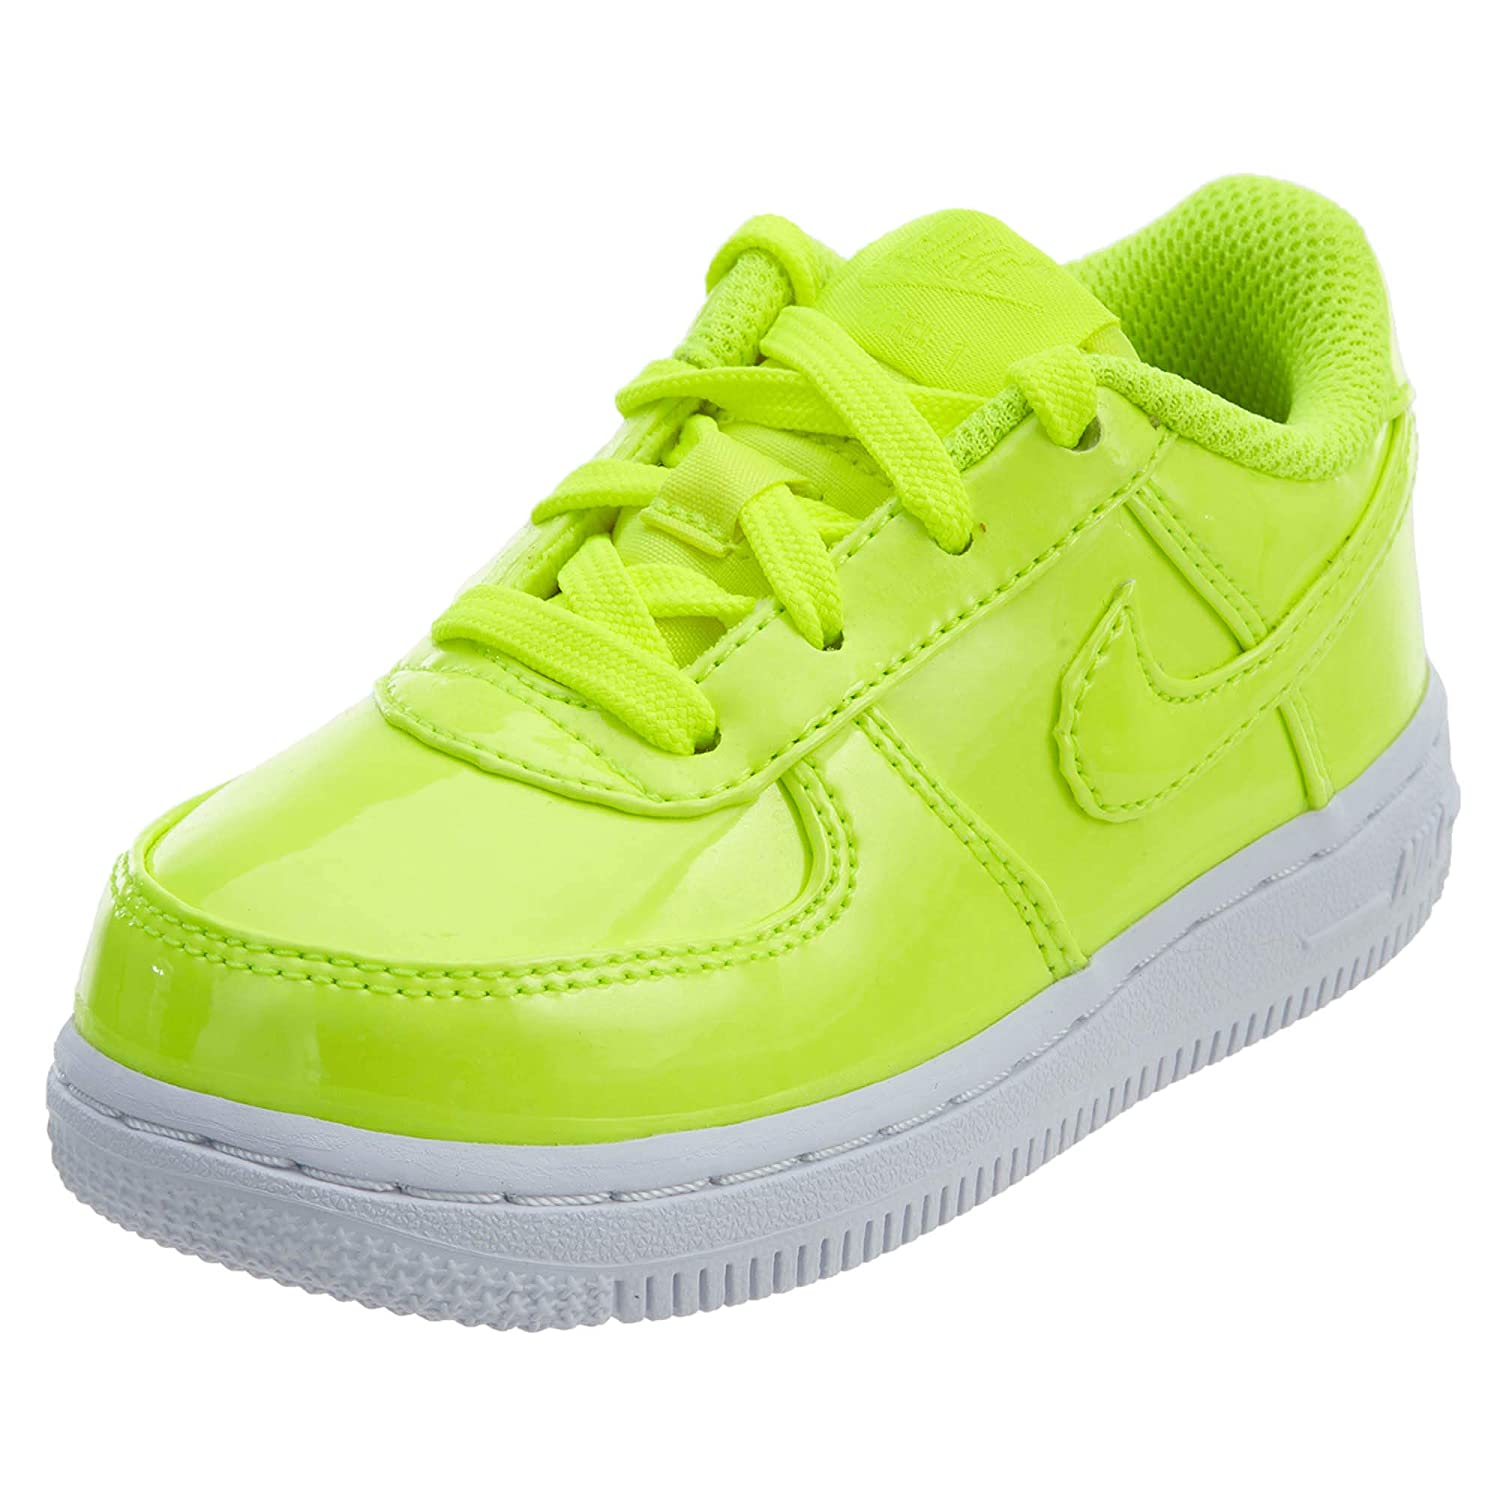 big sale d2ce4 d248a Amazon.com  Nike Men s Air Force 1 High  07 Lv8 Basketball Shoe  Nike  Shoes